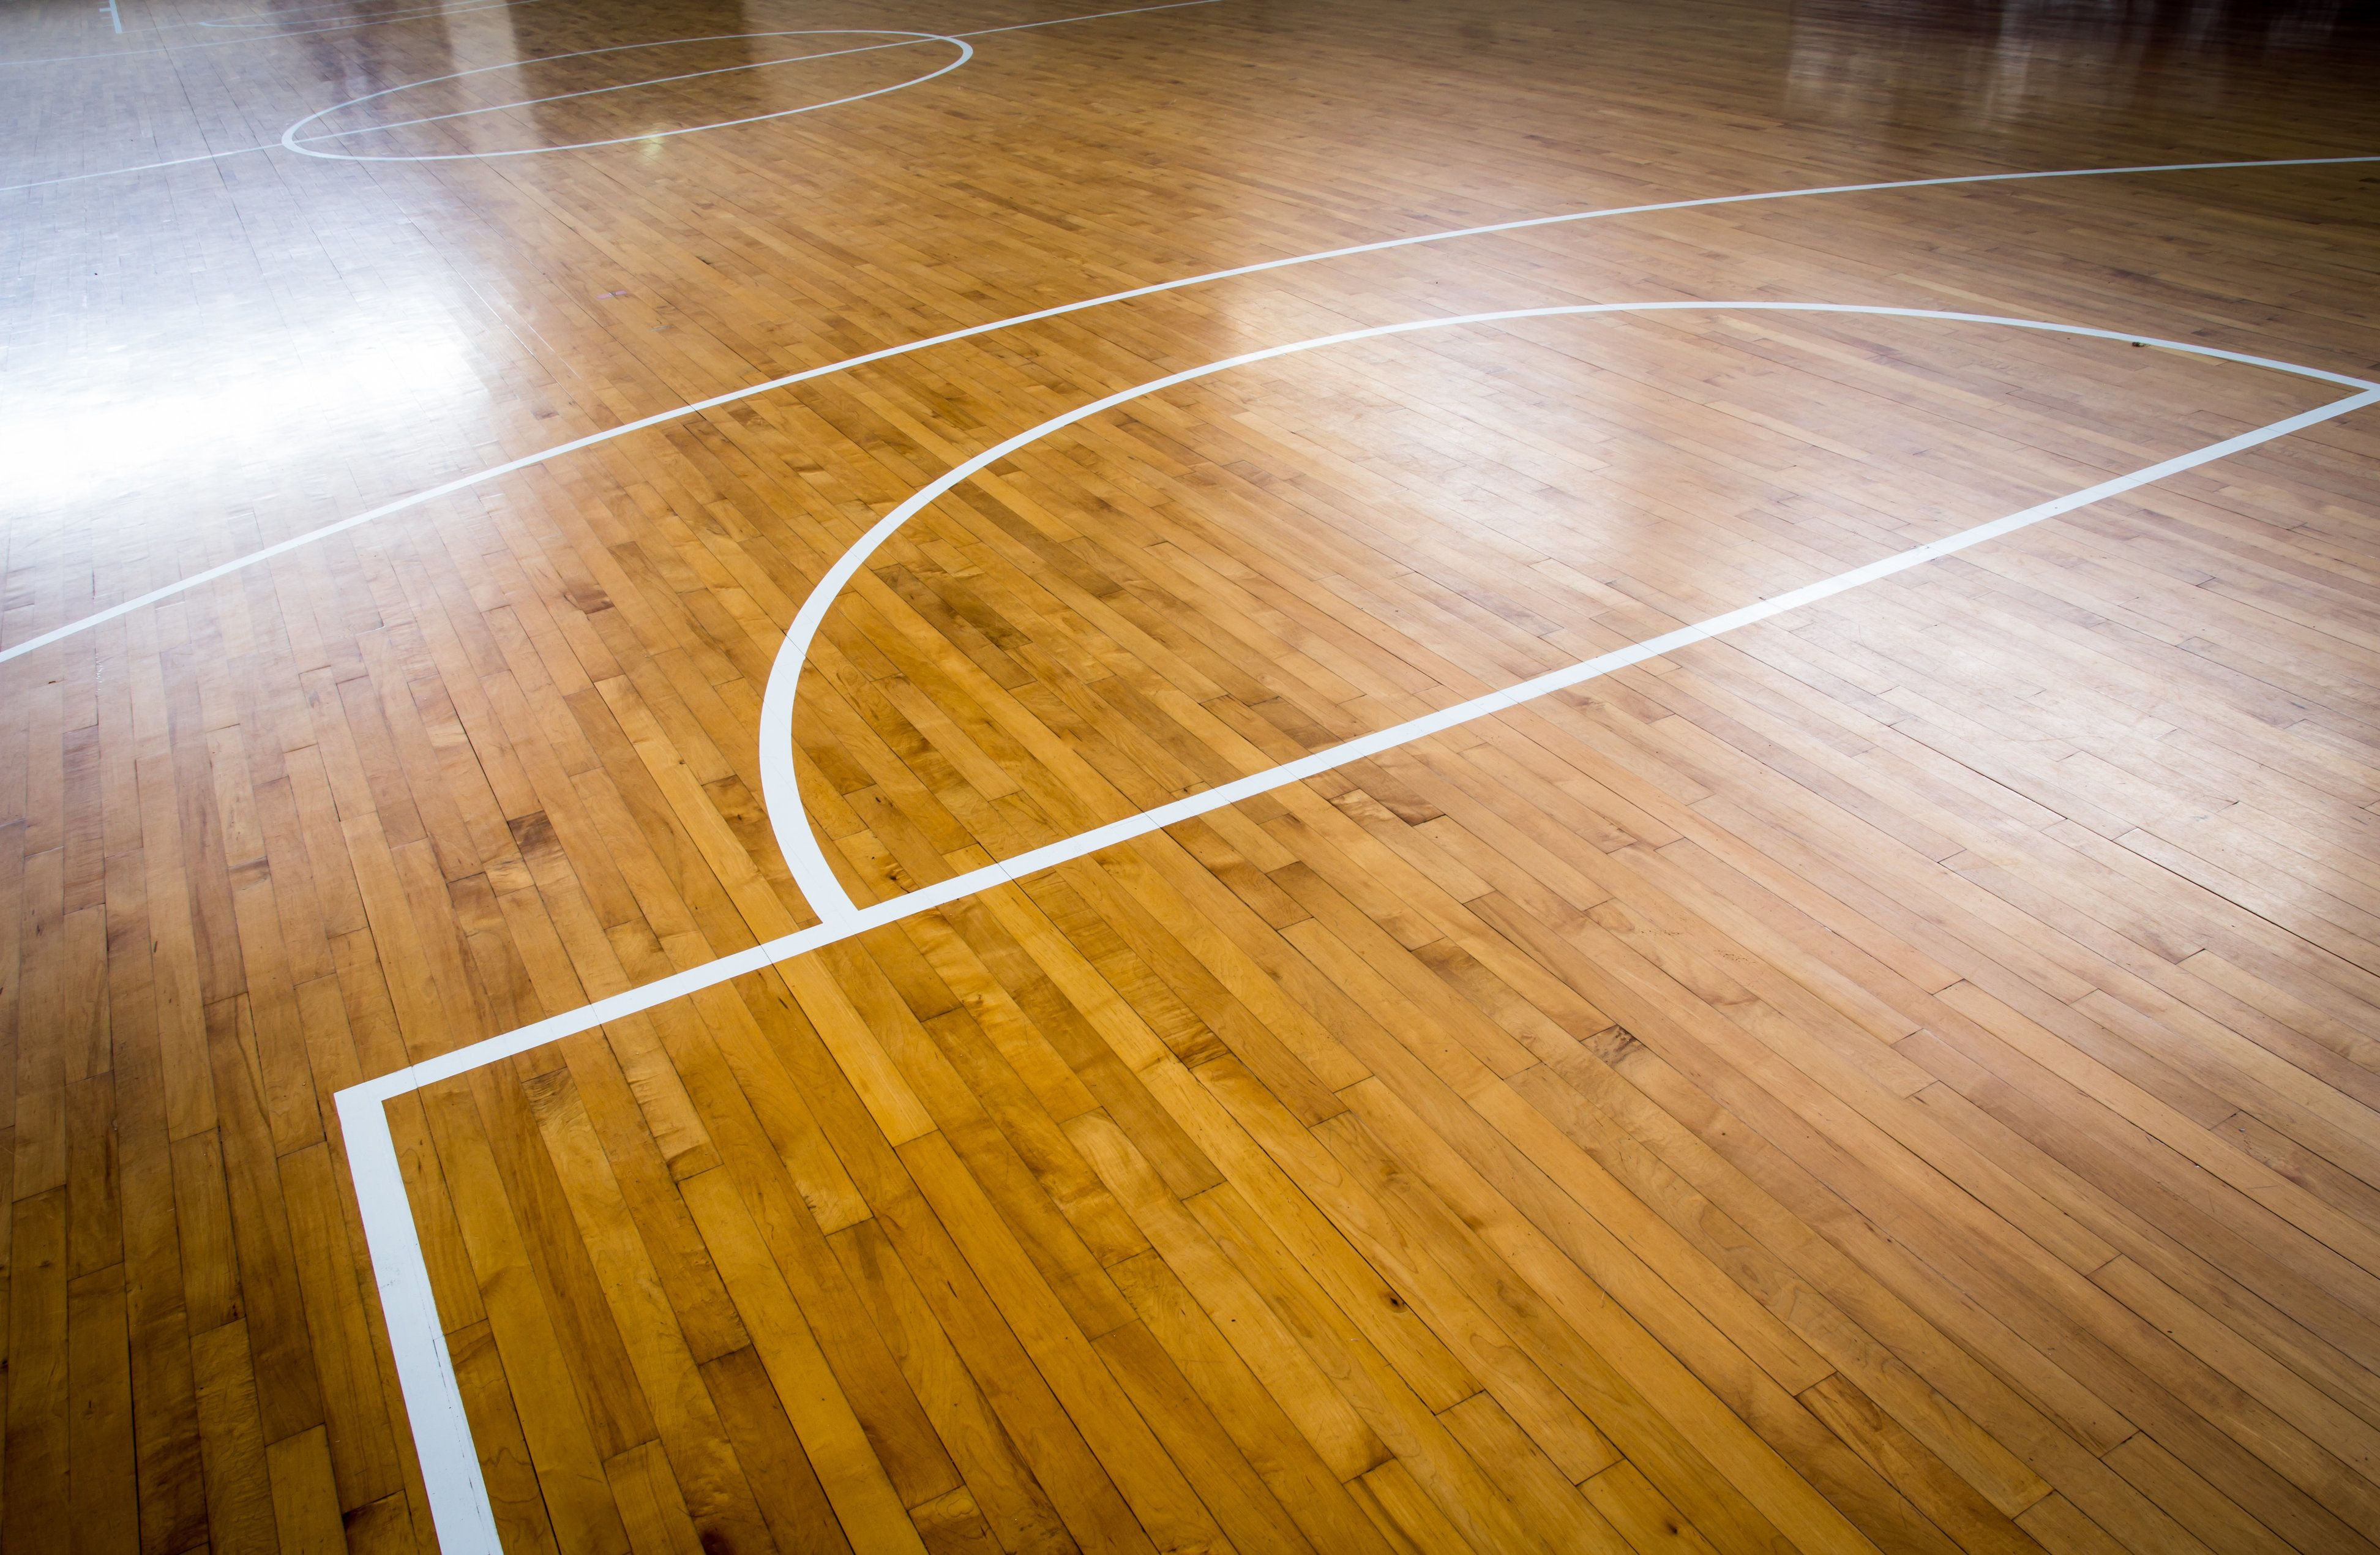 Background Basketball Court Backgrounds Basketball